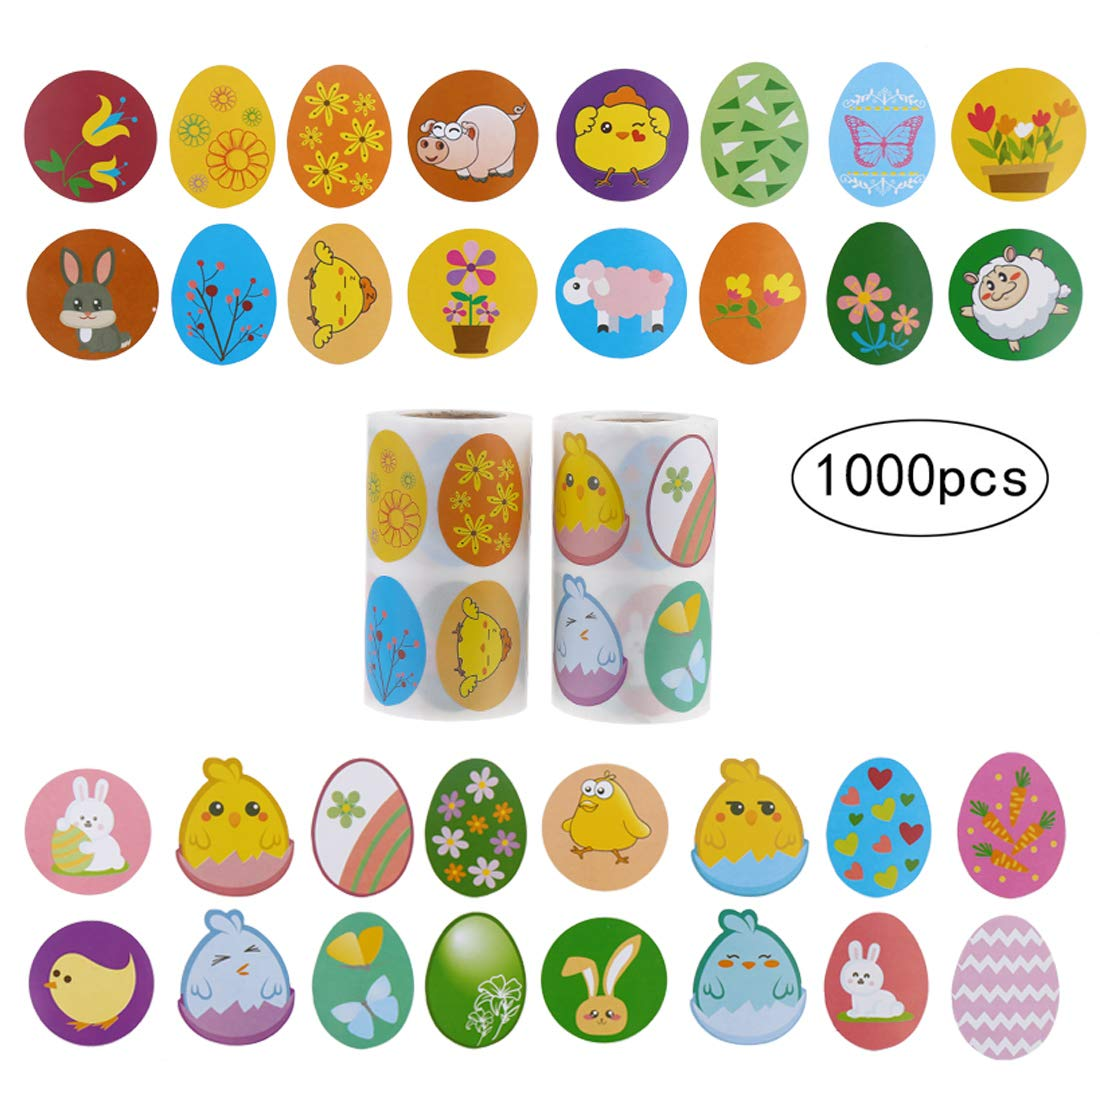 CCINEE Easter Stickers Children 1000Pcs Easter Egg Stickers Roll Novelty Assorted 3.5 Wide Roll of Stickers